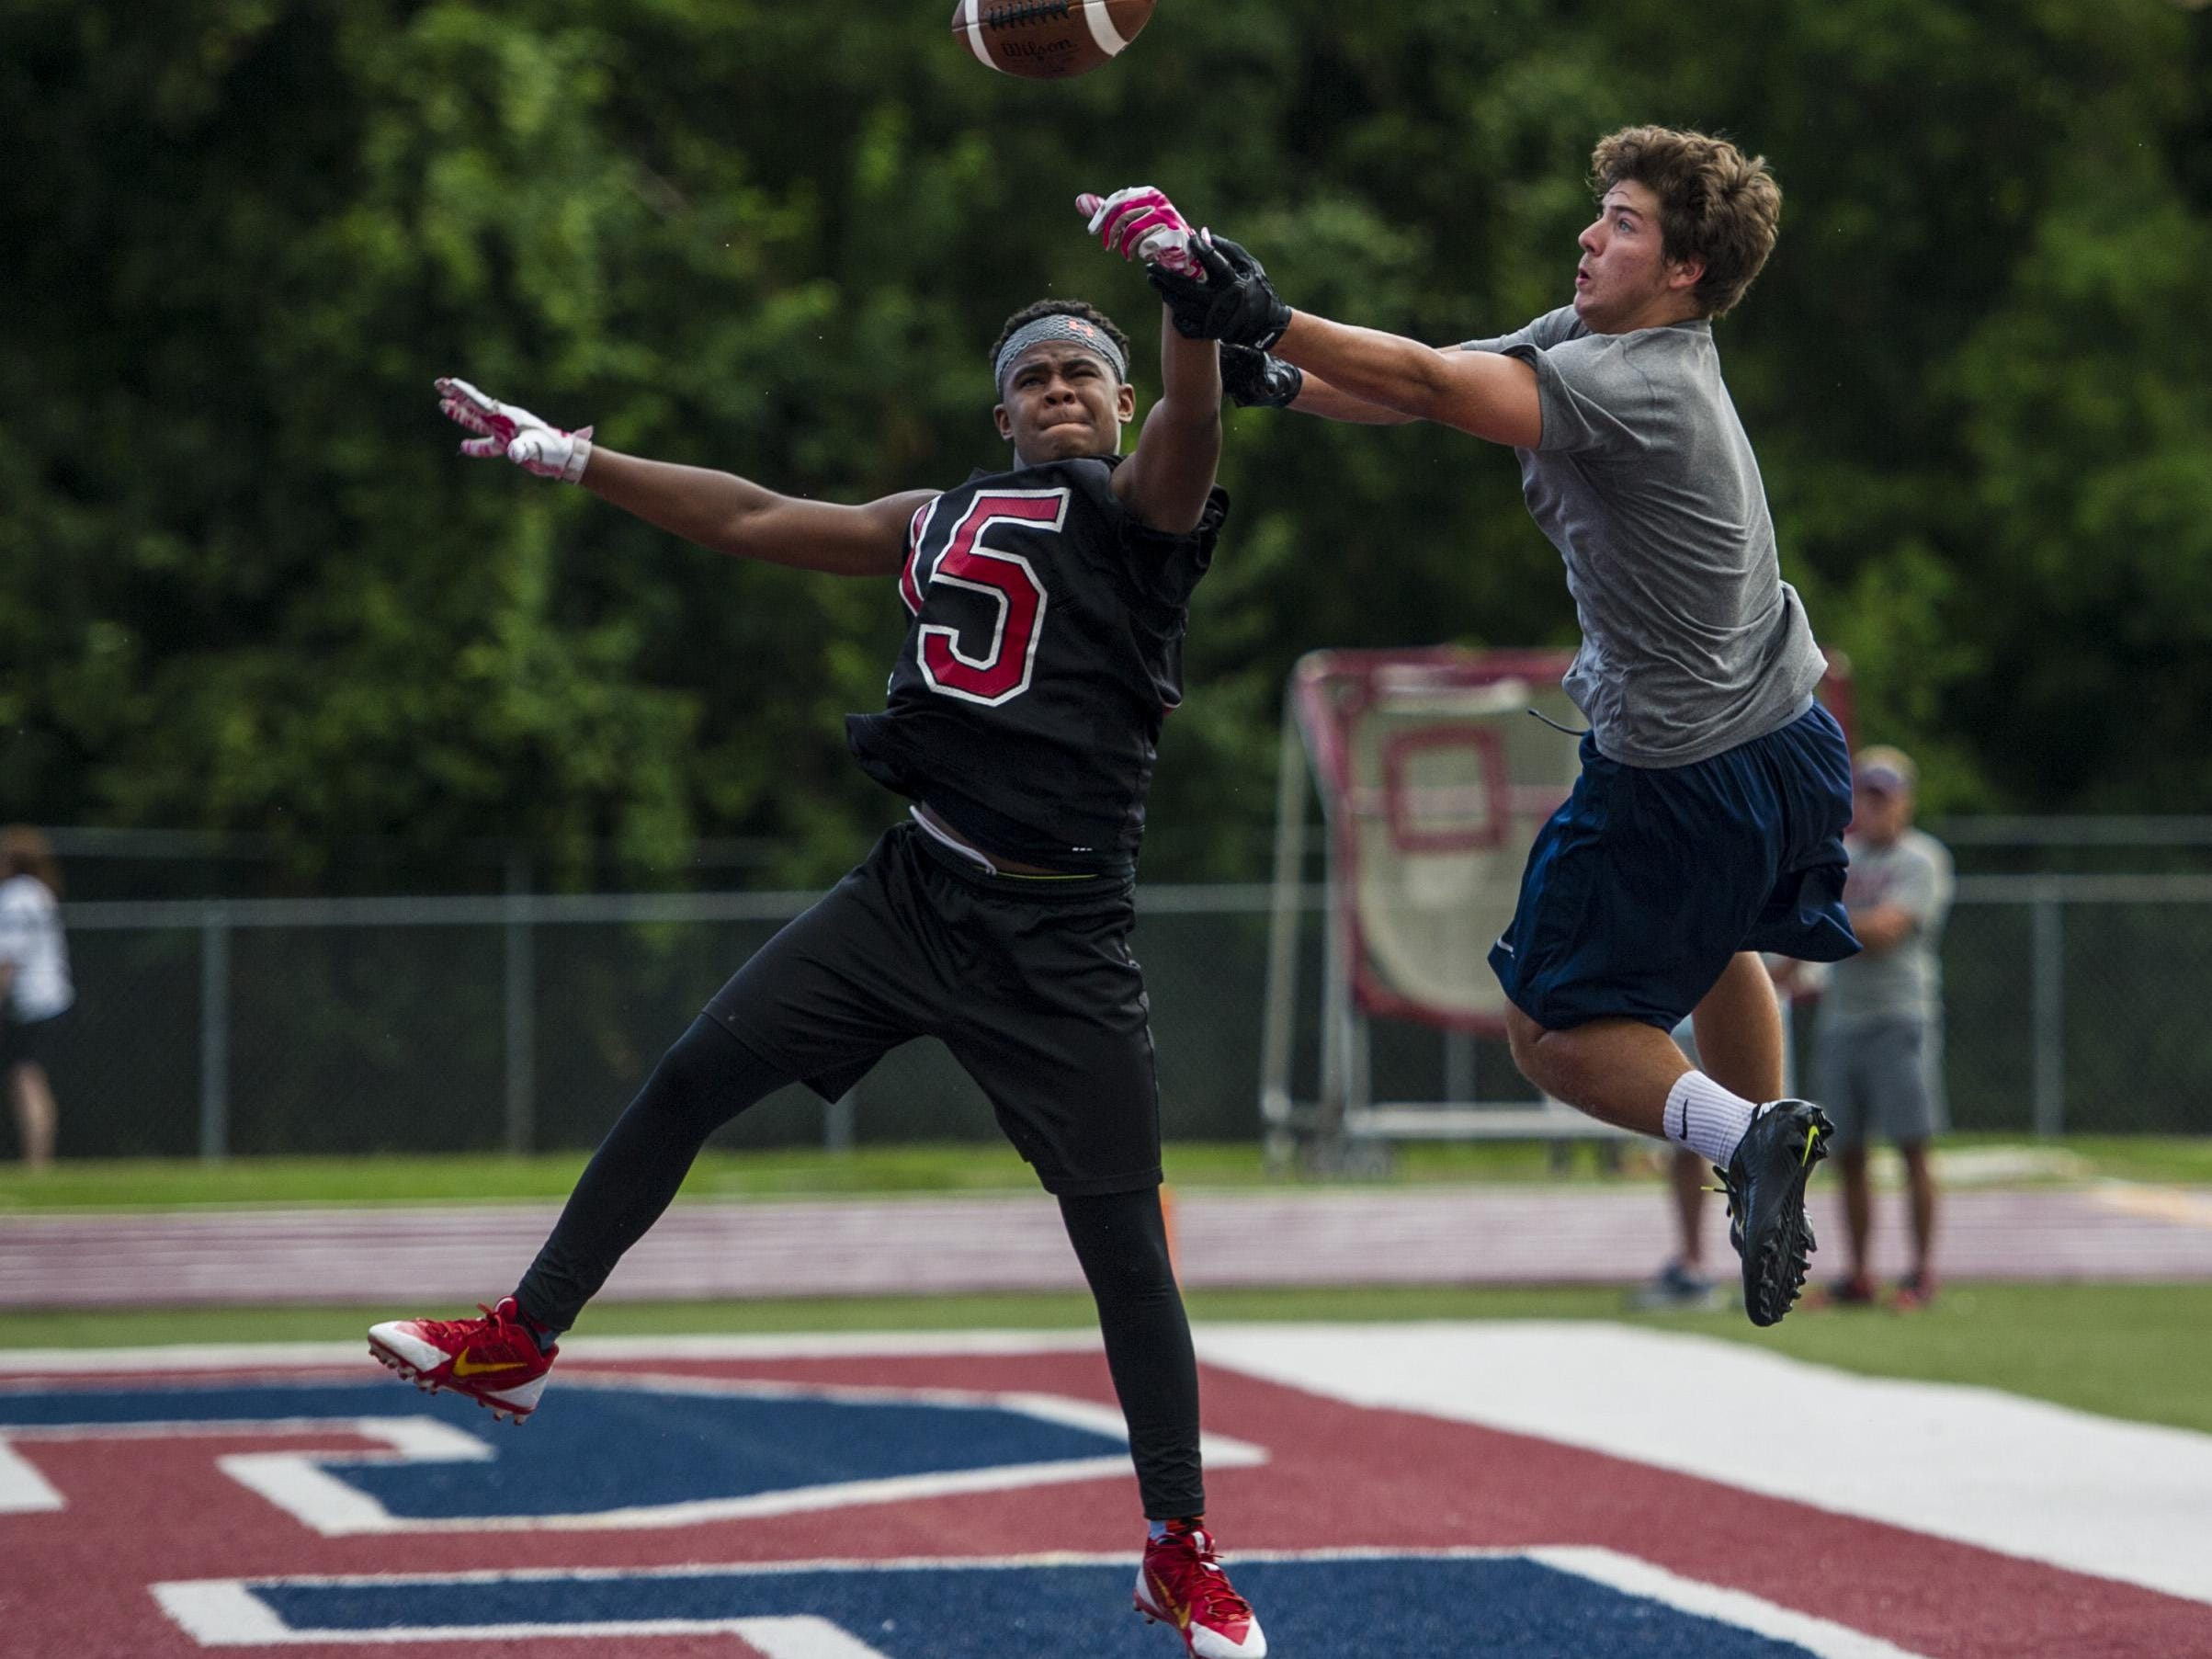 Northside's Theo Rose swipes the football away from Teurlings' Jansen Lormand during a game in the 7-on-7 Showcase hosted by Quick Slants Magazine at St. Thomas More Catholic High School in Lafayette, La., Thursday, July 16, 2015.